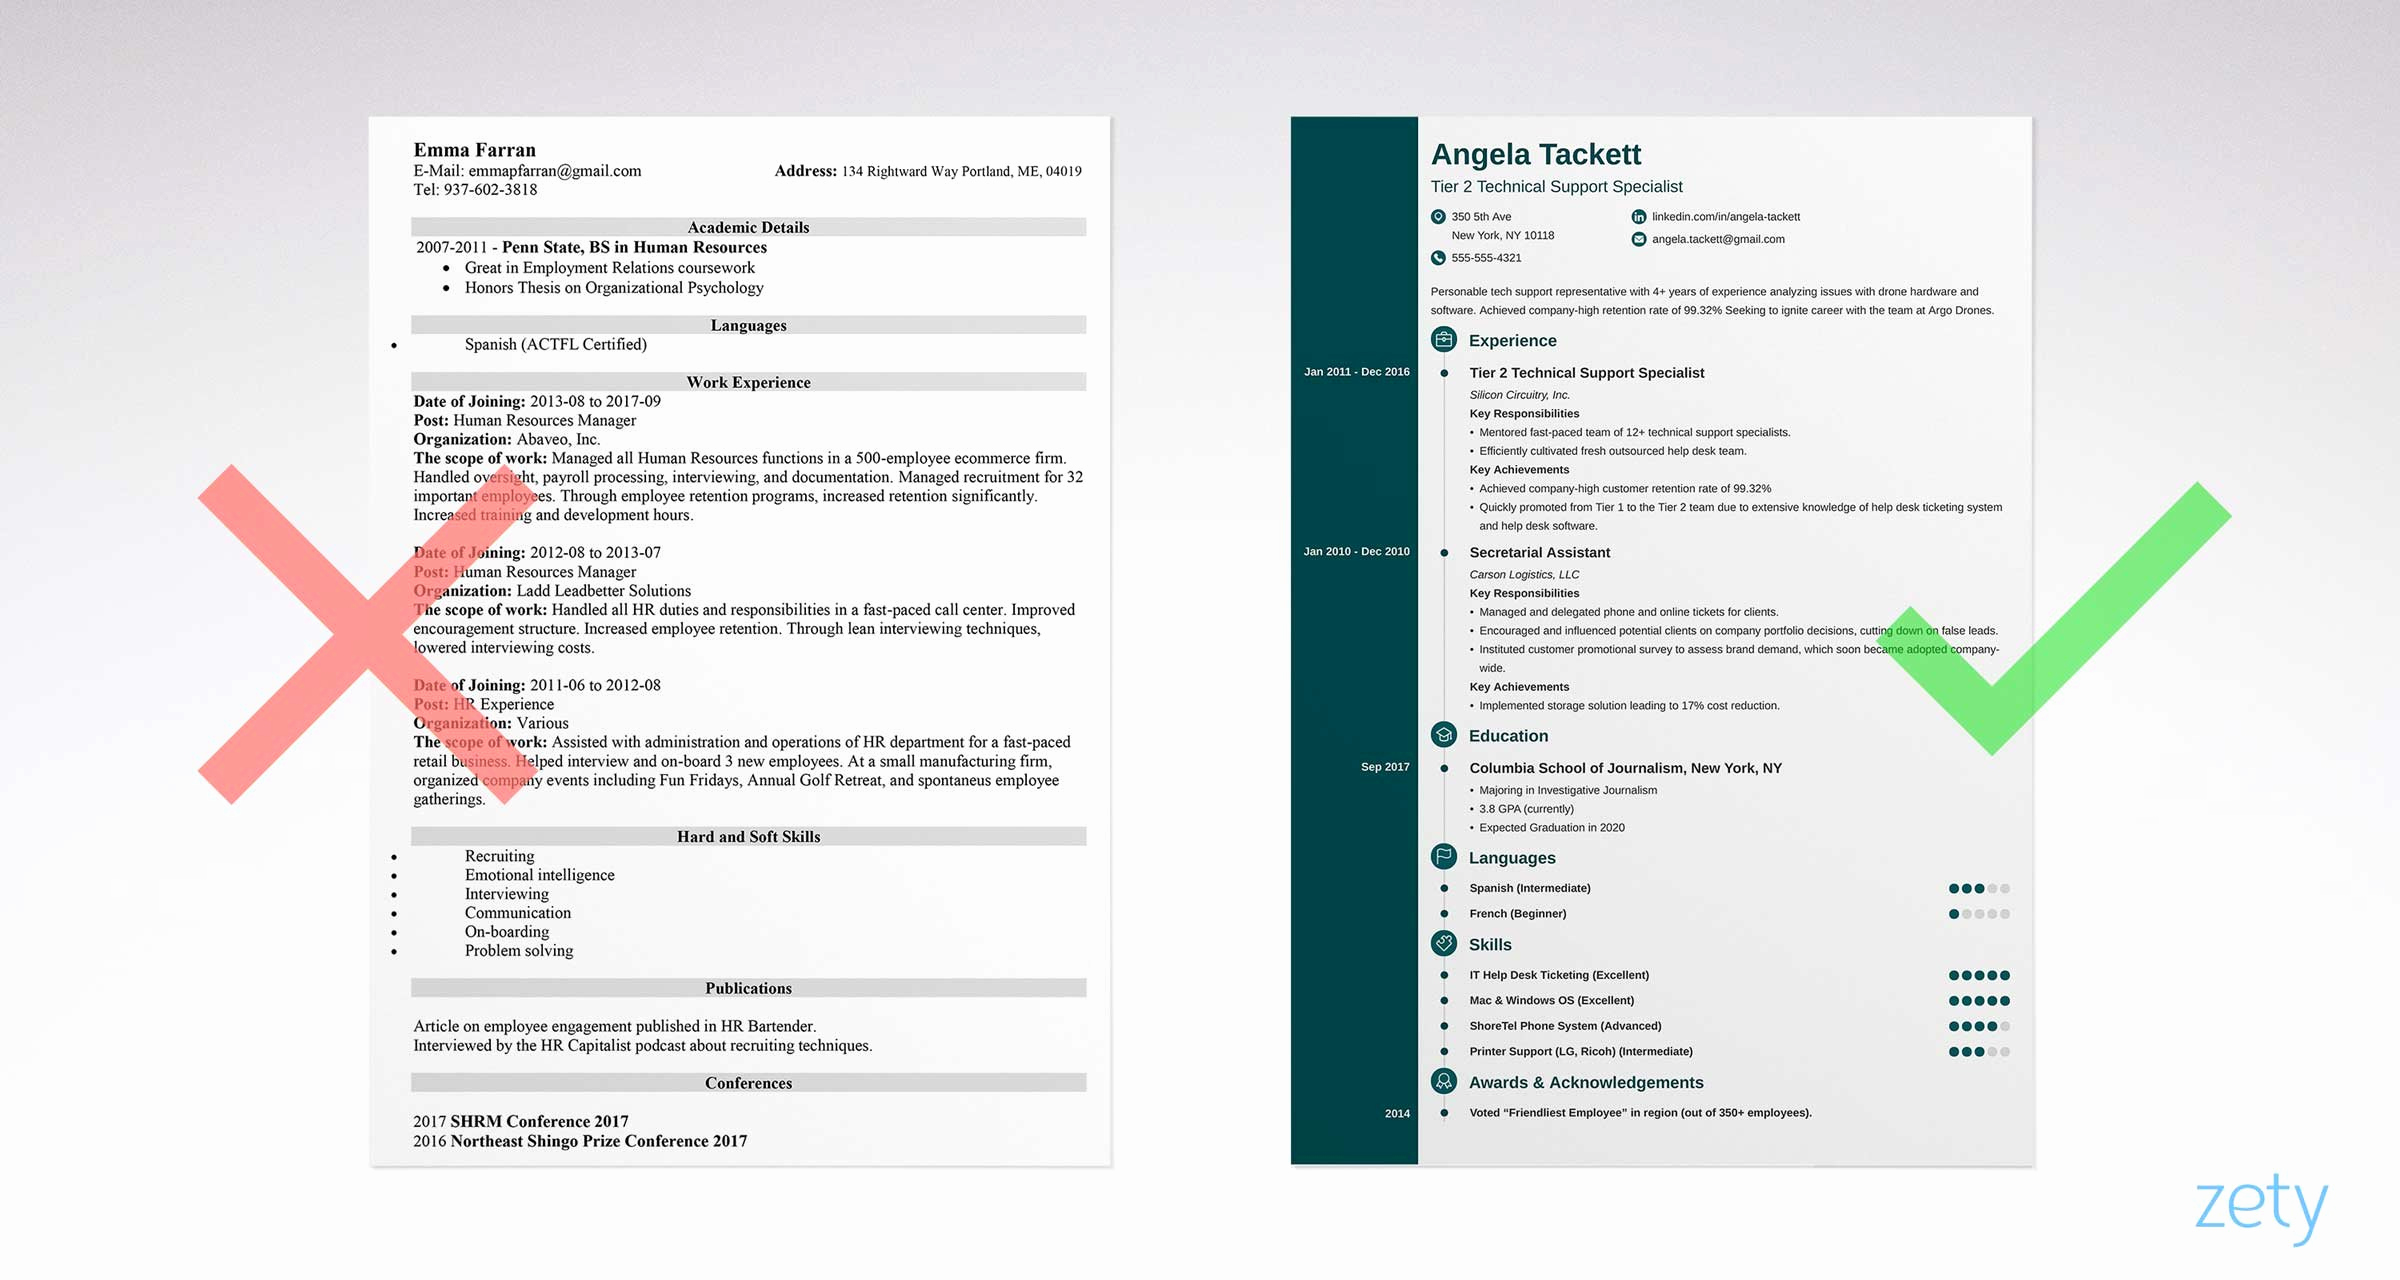 Free Simple Resume Templates New Simple Resume Templates 15 Examples to Download & Use now